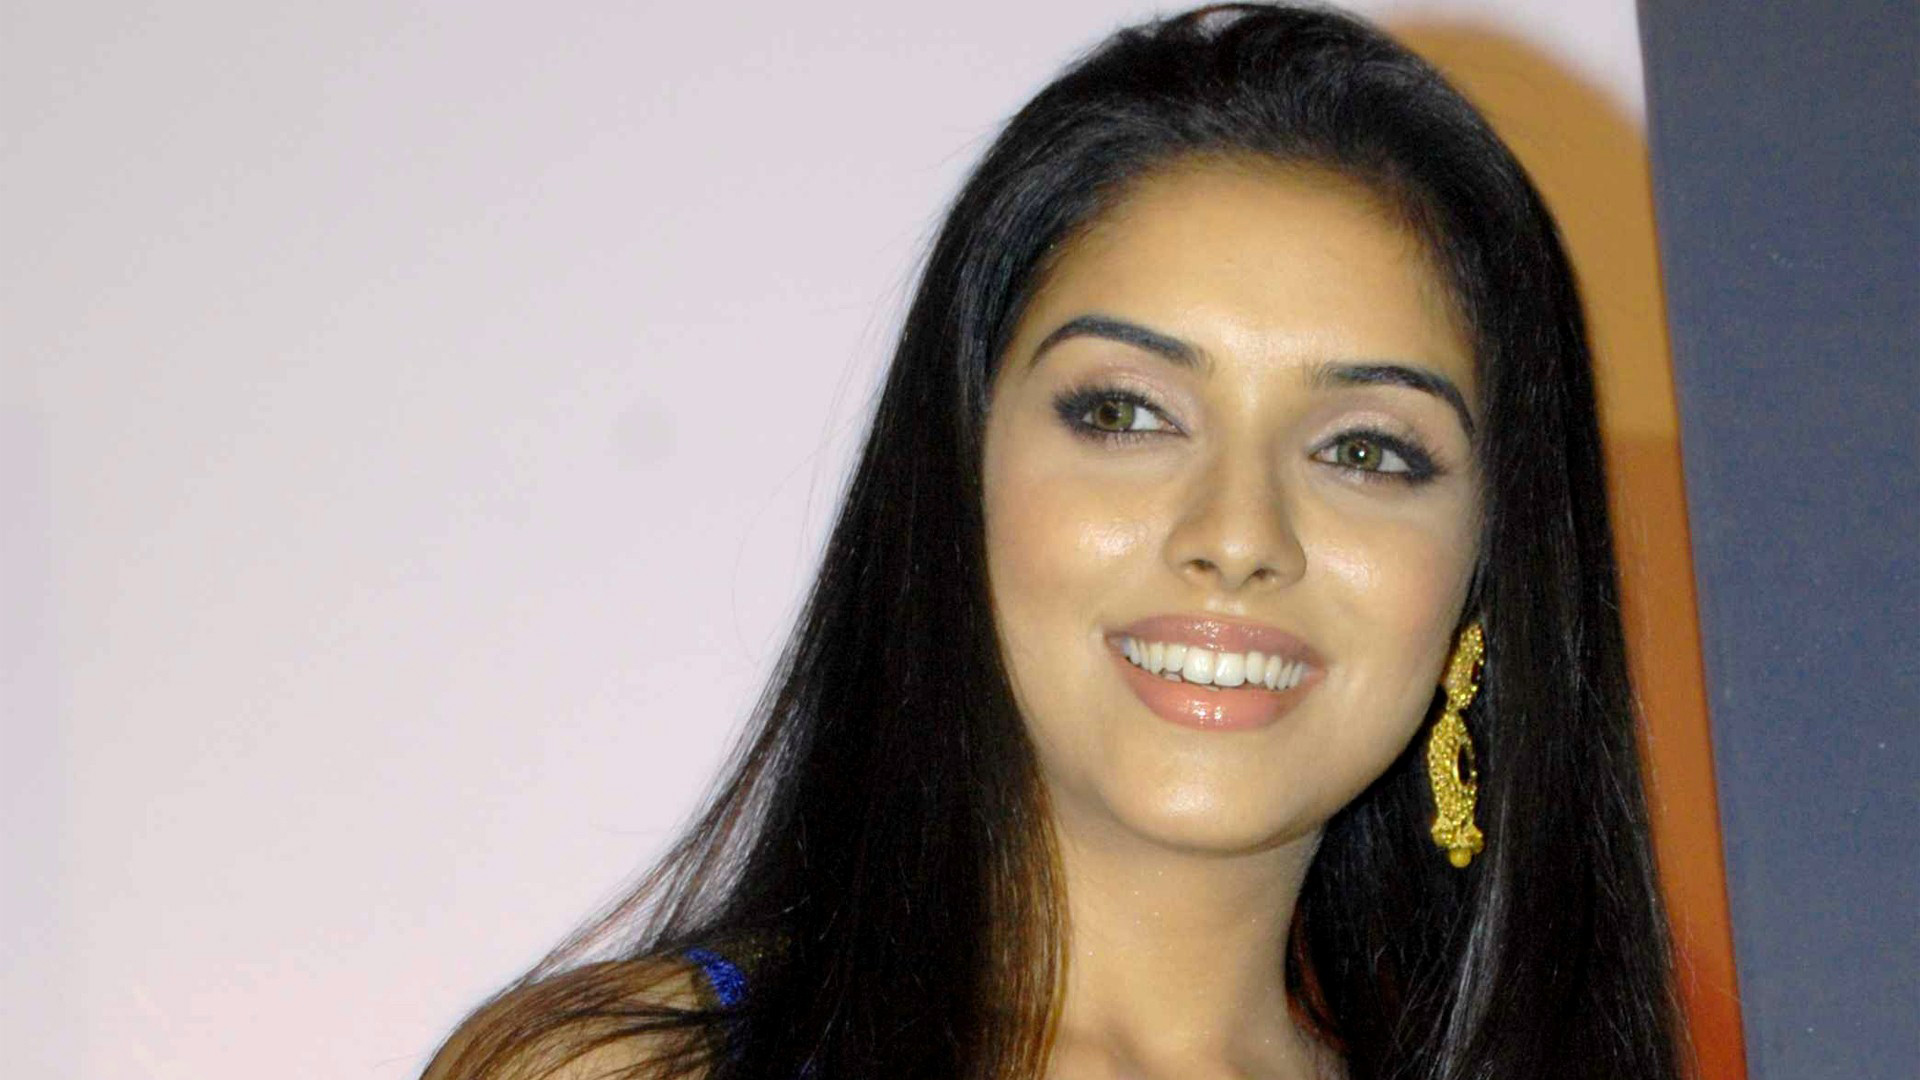 Asin images Pics for Facebook